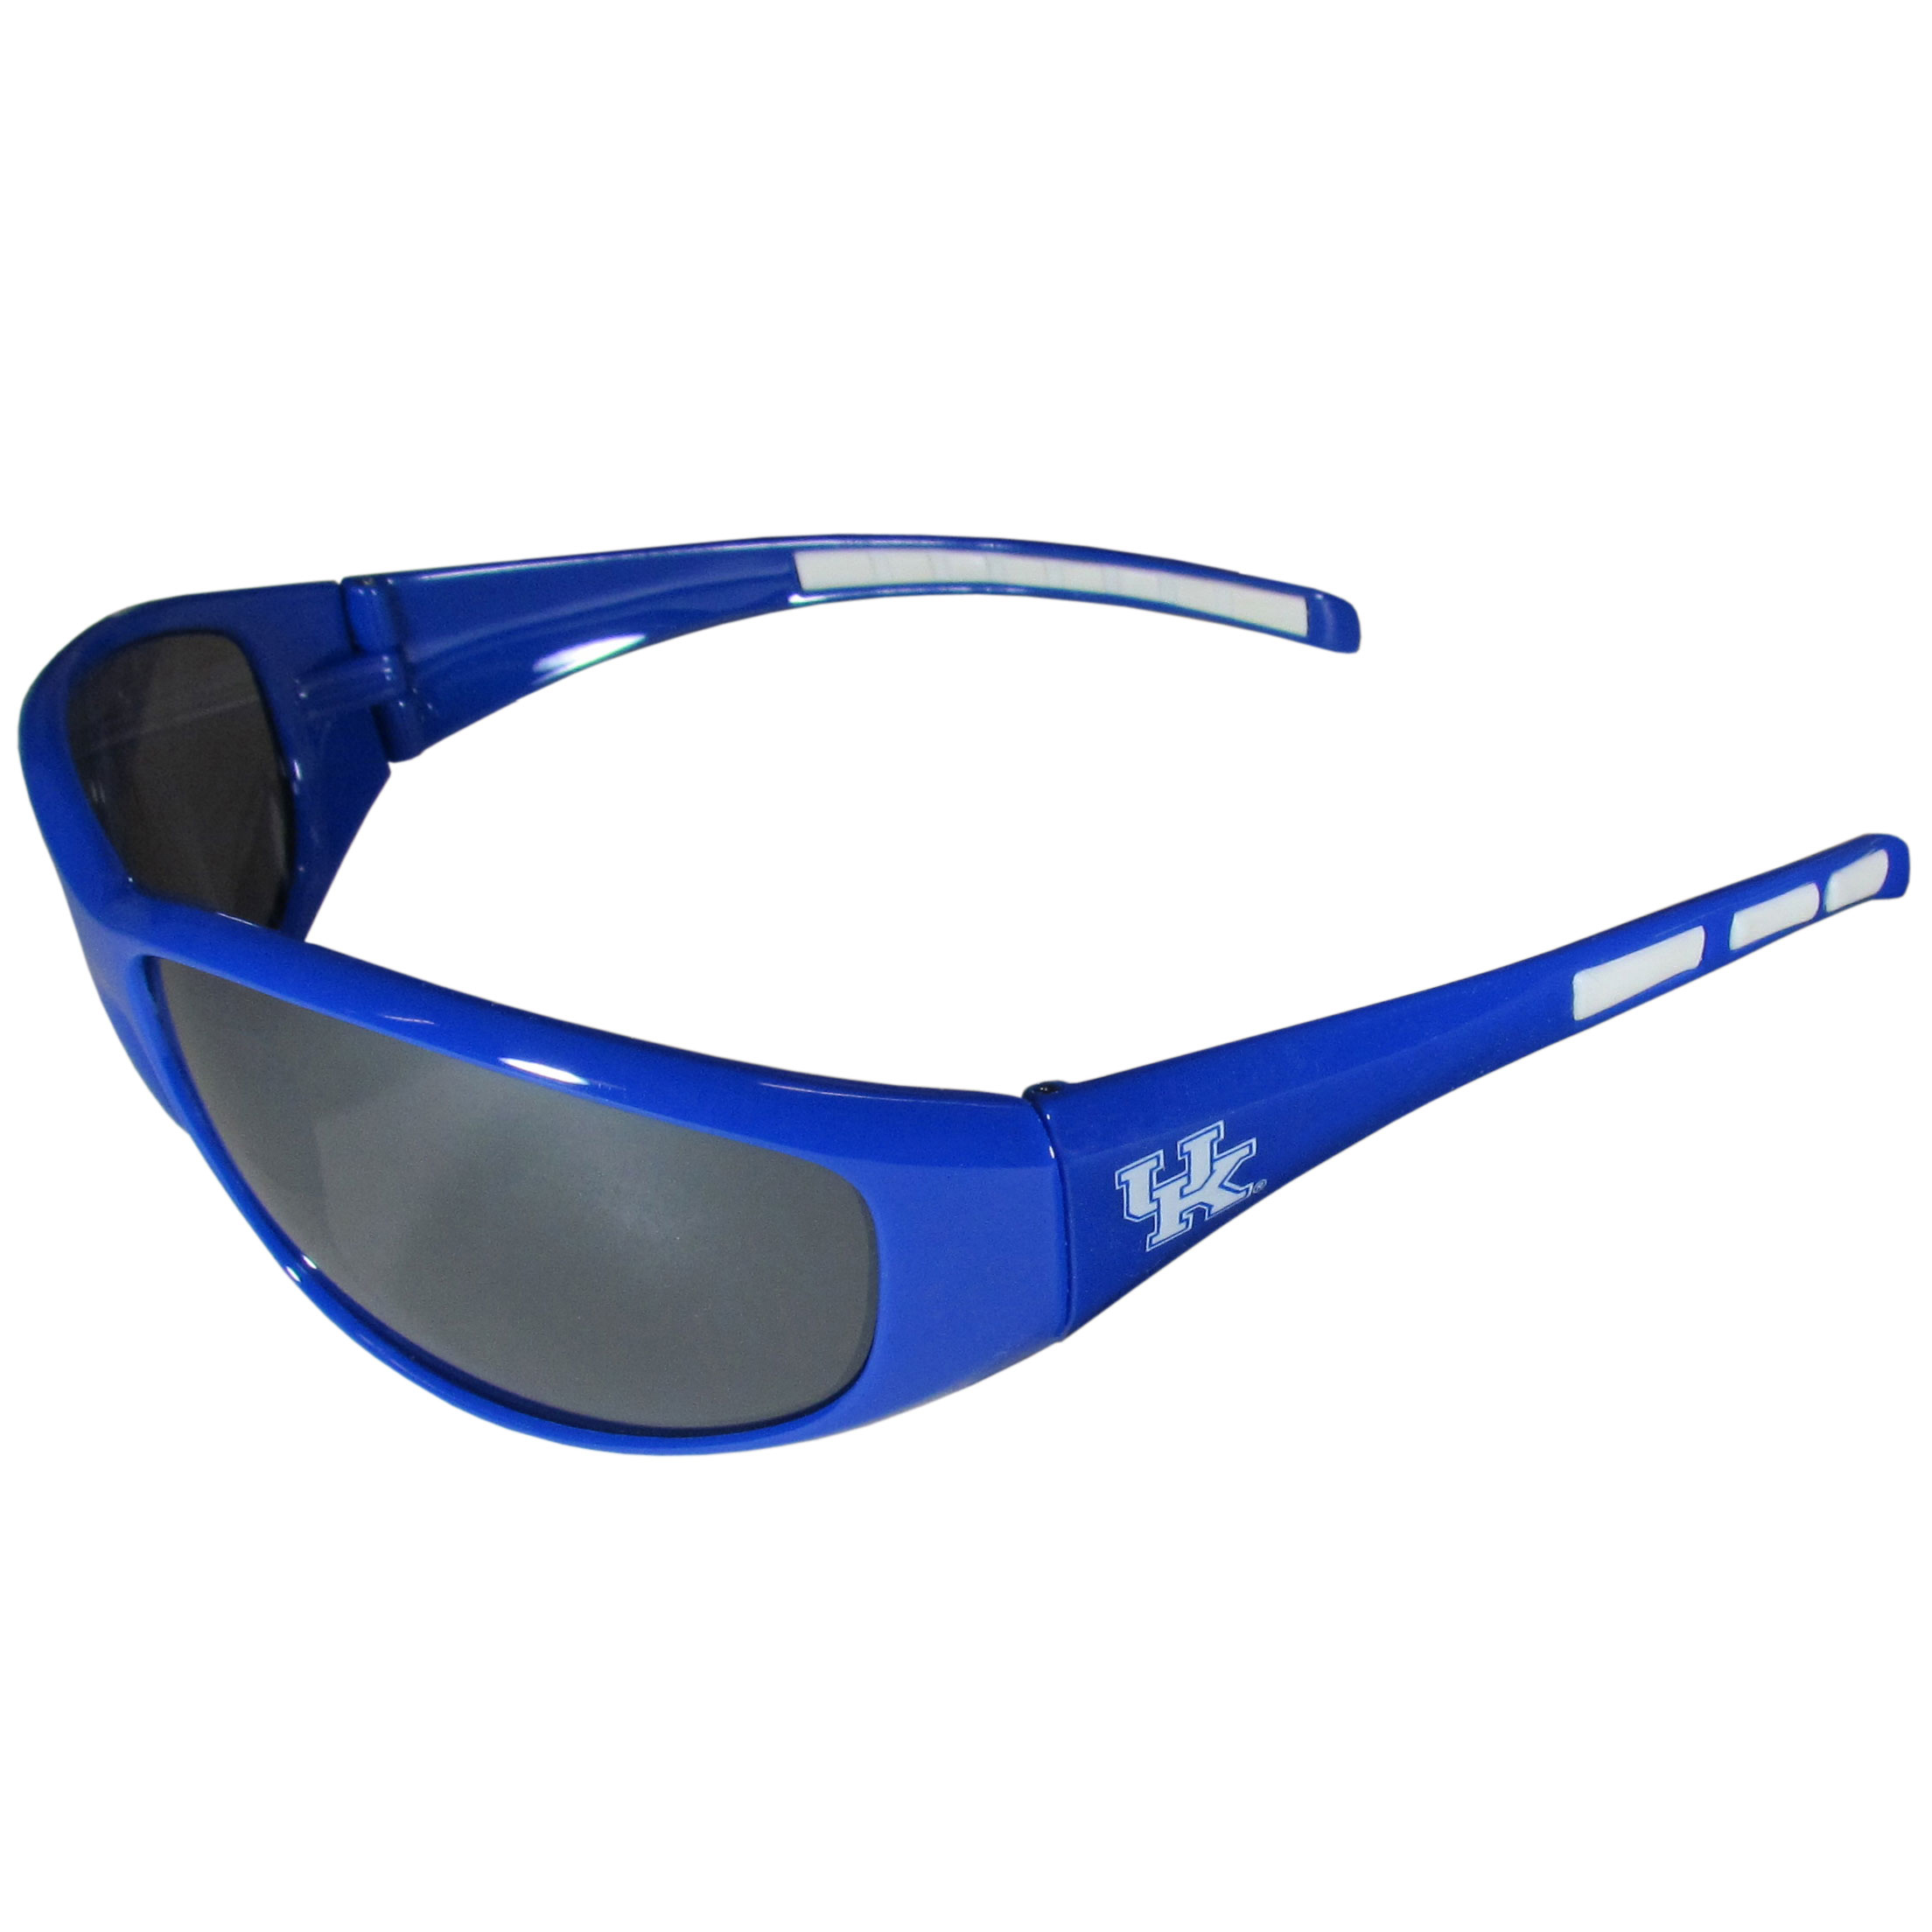 Kentucky Wildcats Wrap Sunglass and Case Set - This great set includes a high quality pair of Kentucky Wildcats wrap sunglasses and hard carrying case.